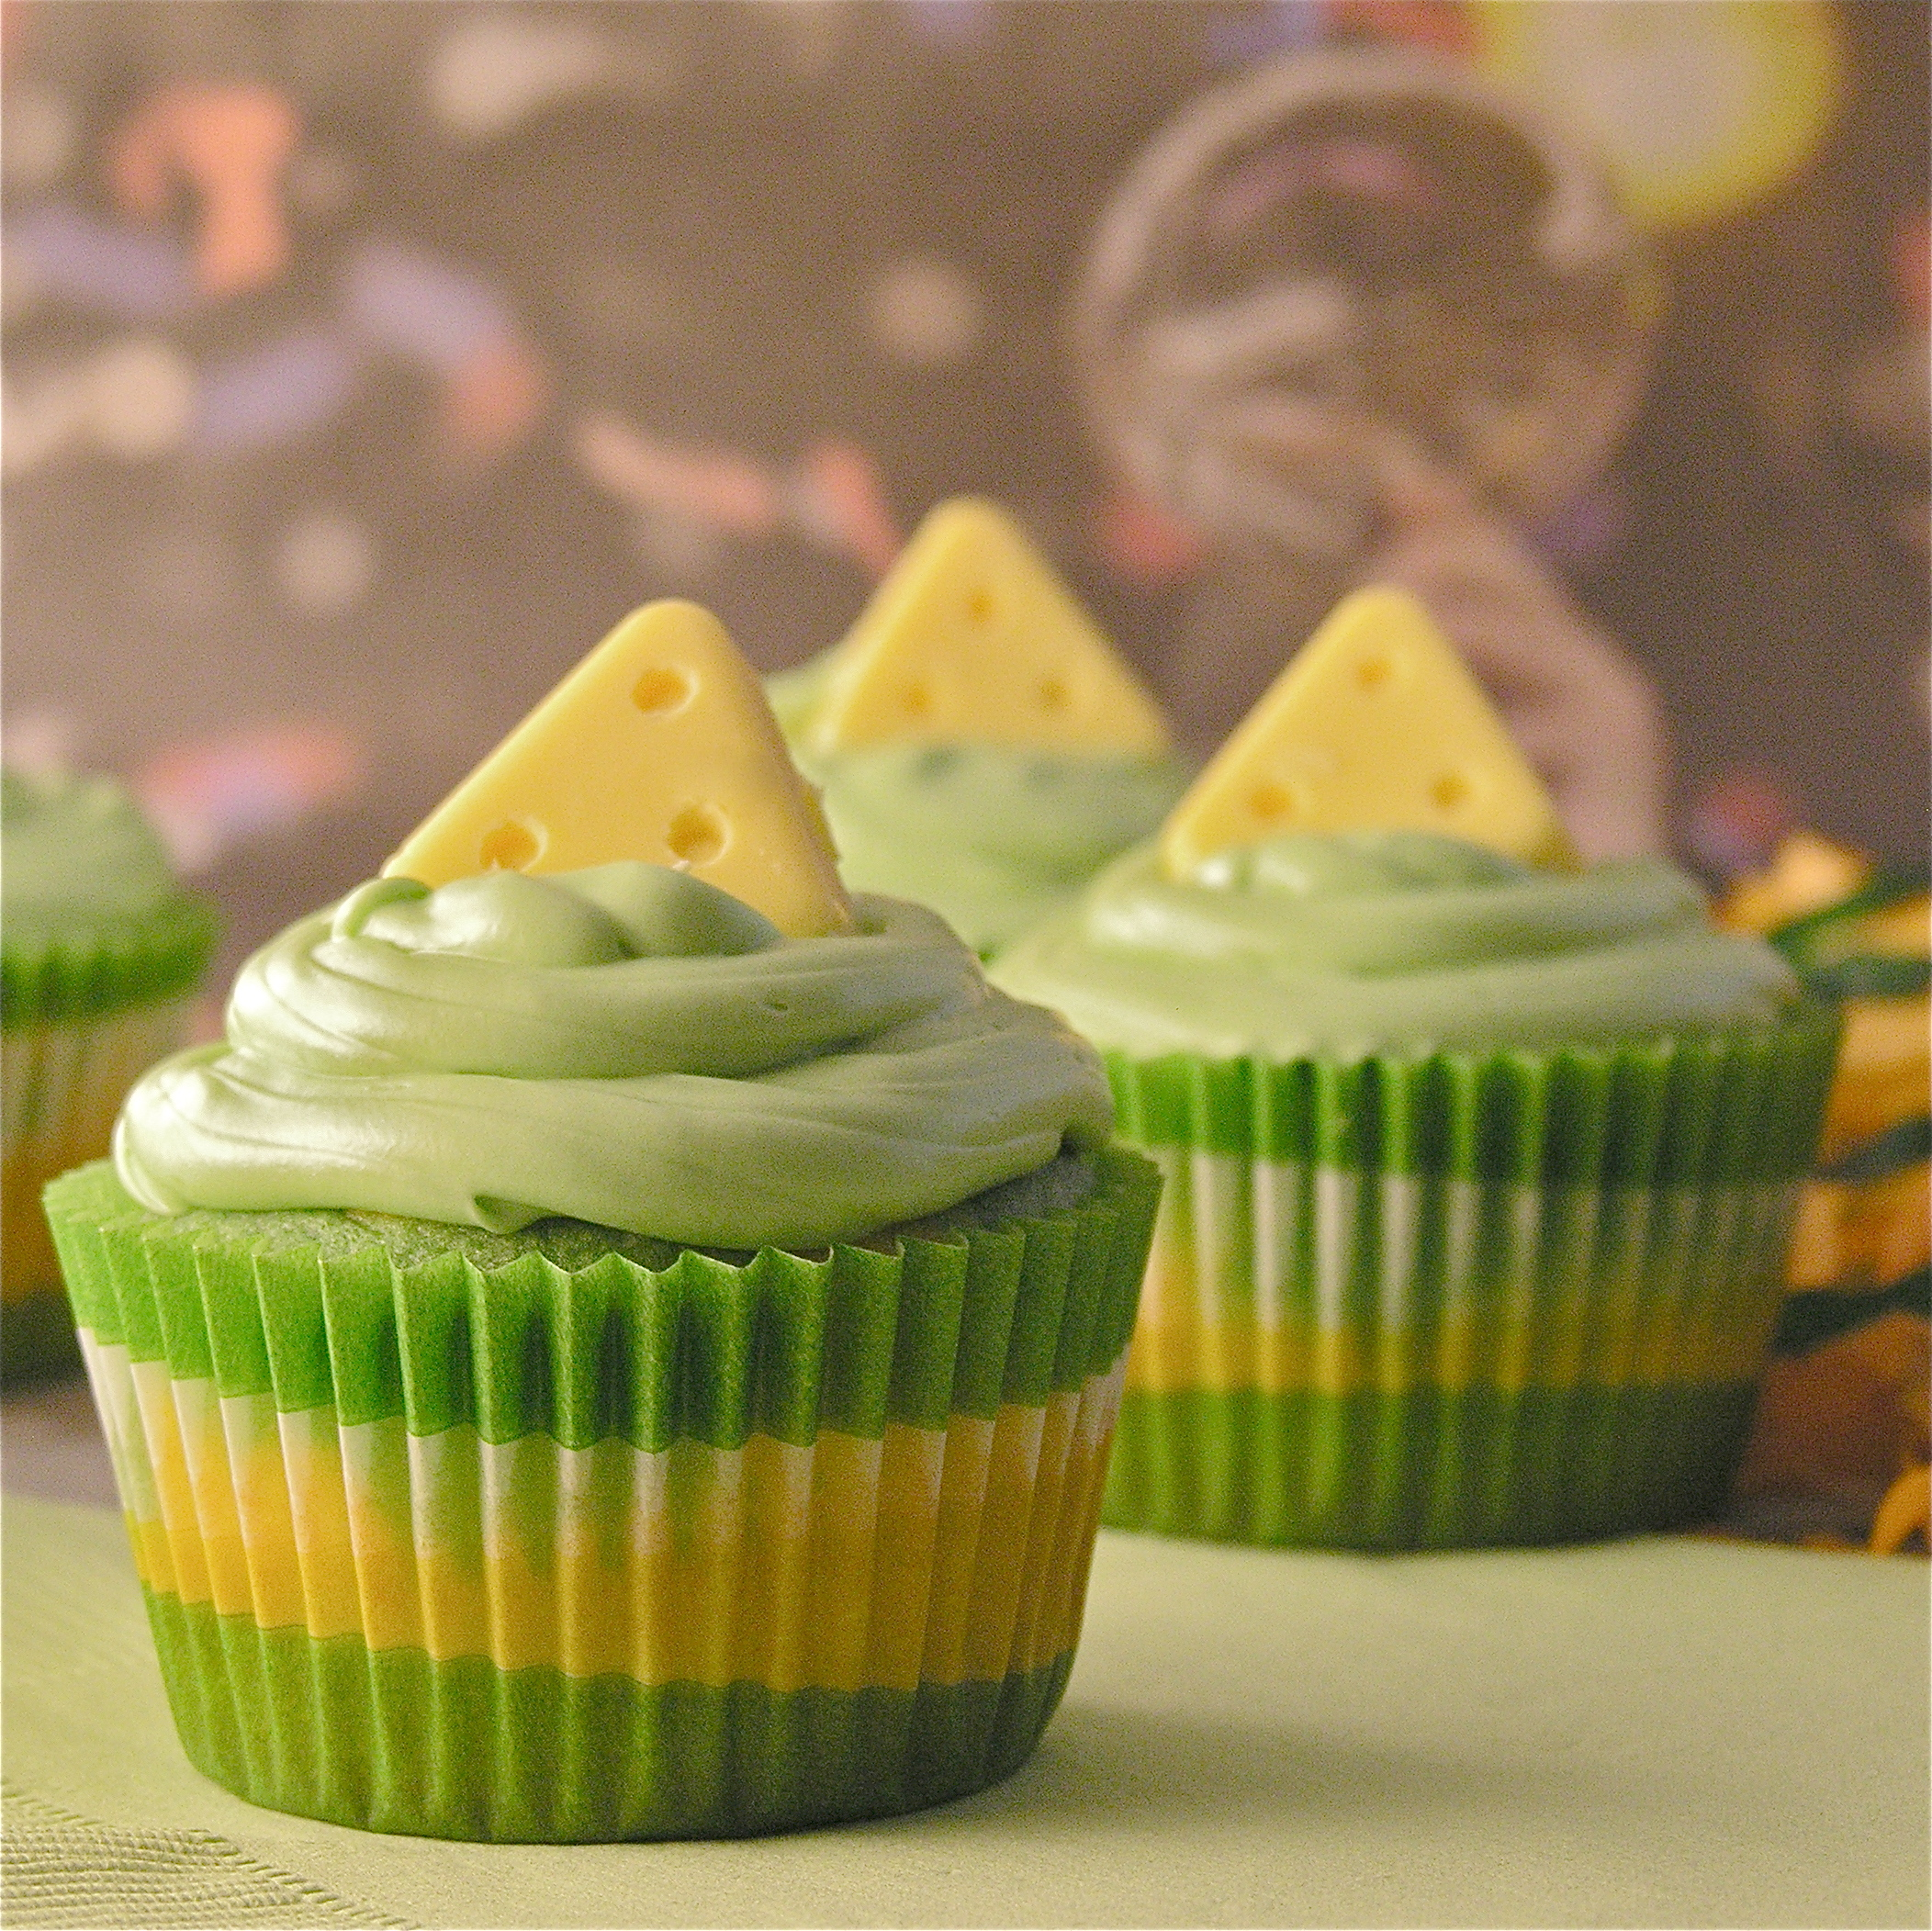 fc8991613 Green Bay Packer cupcakes